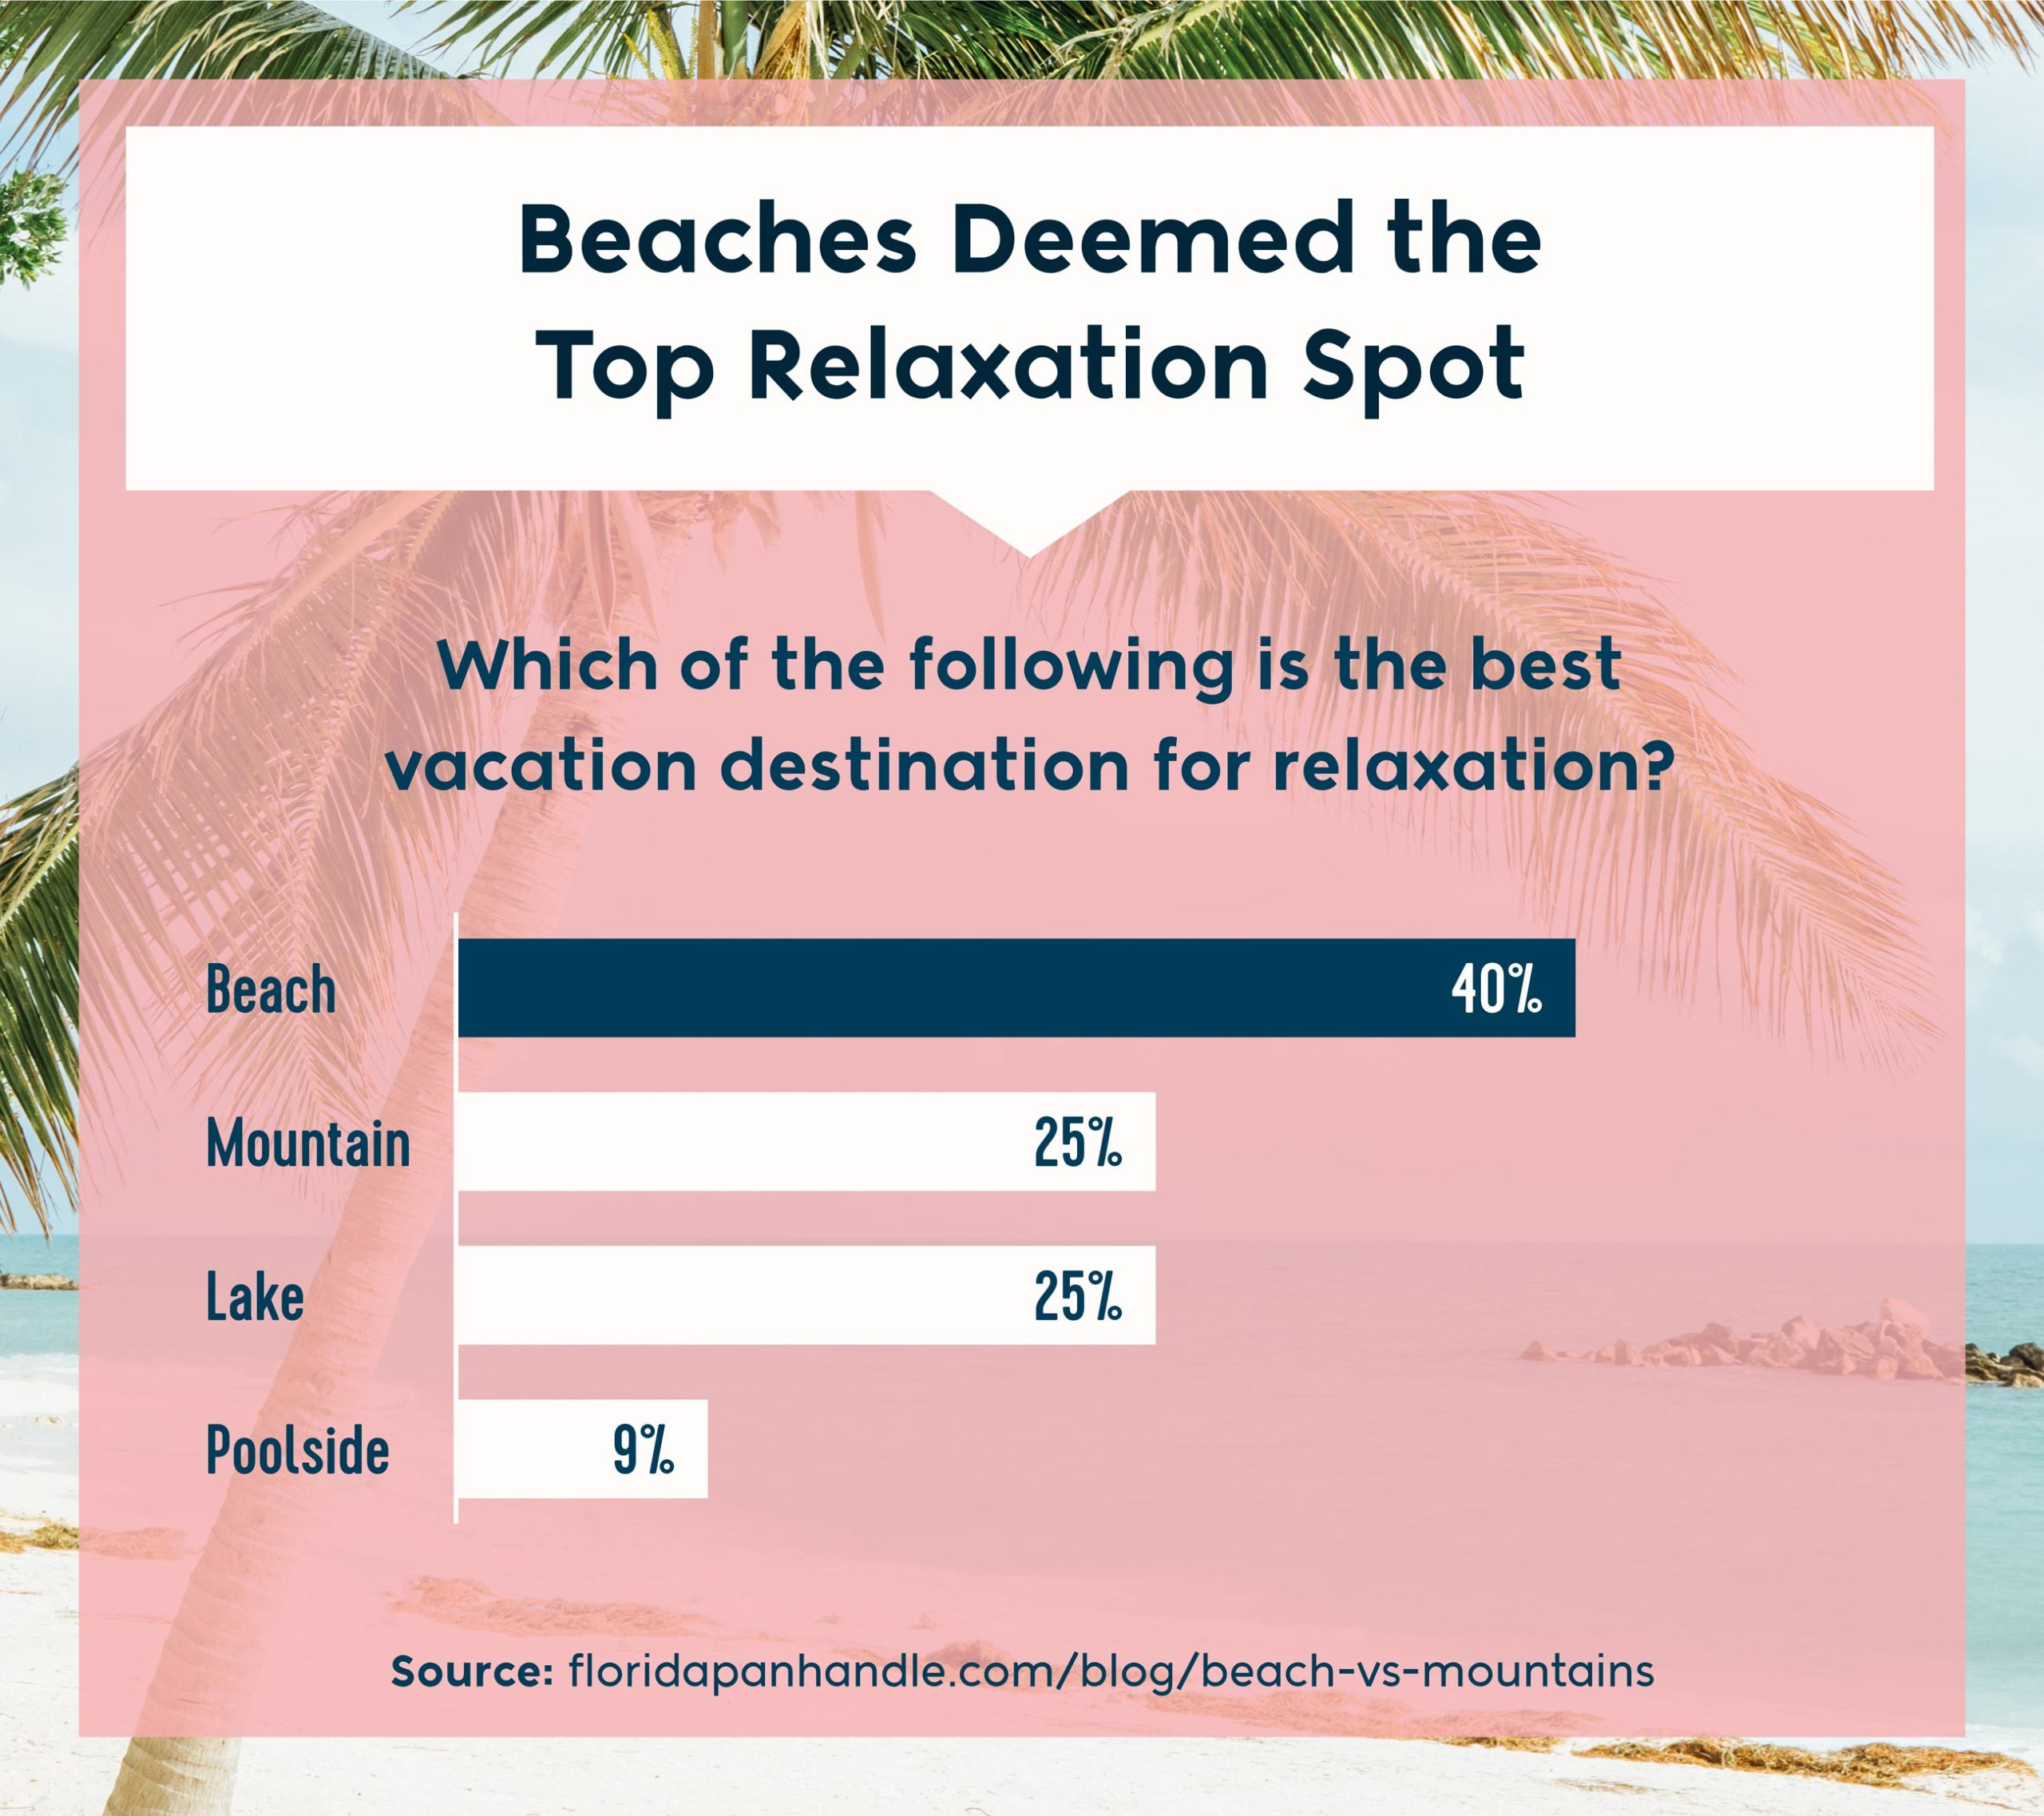 which of the following is the best vacation destination for relaxation